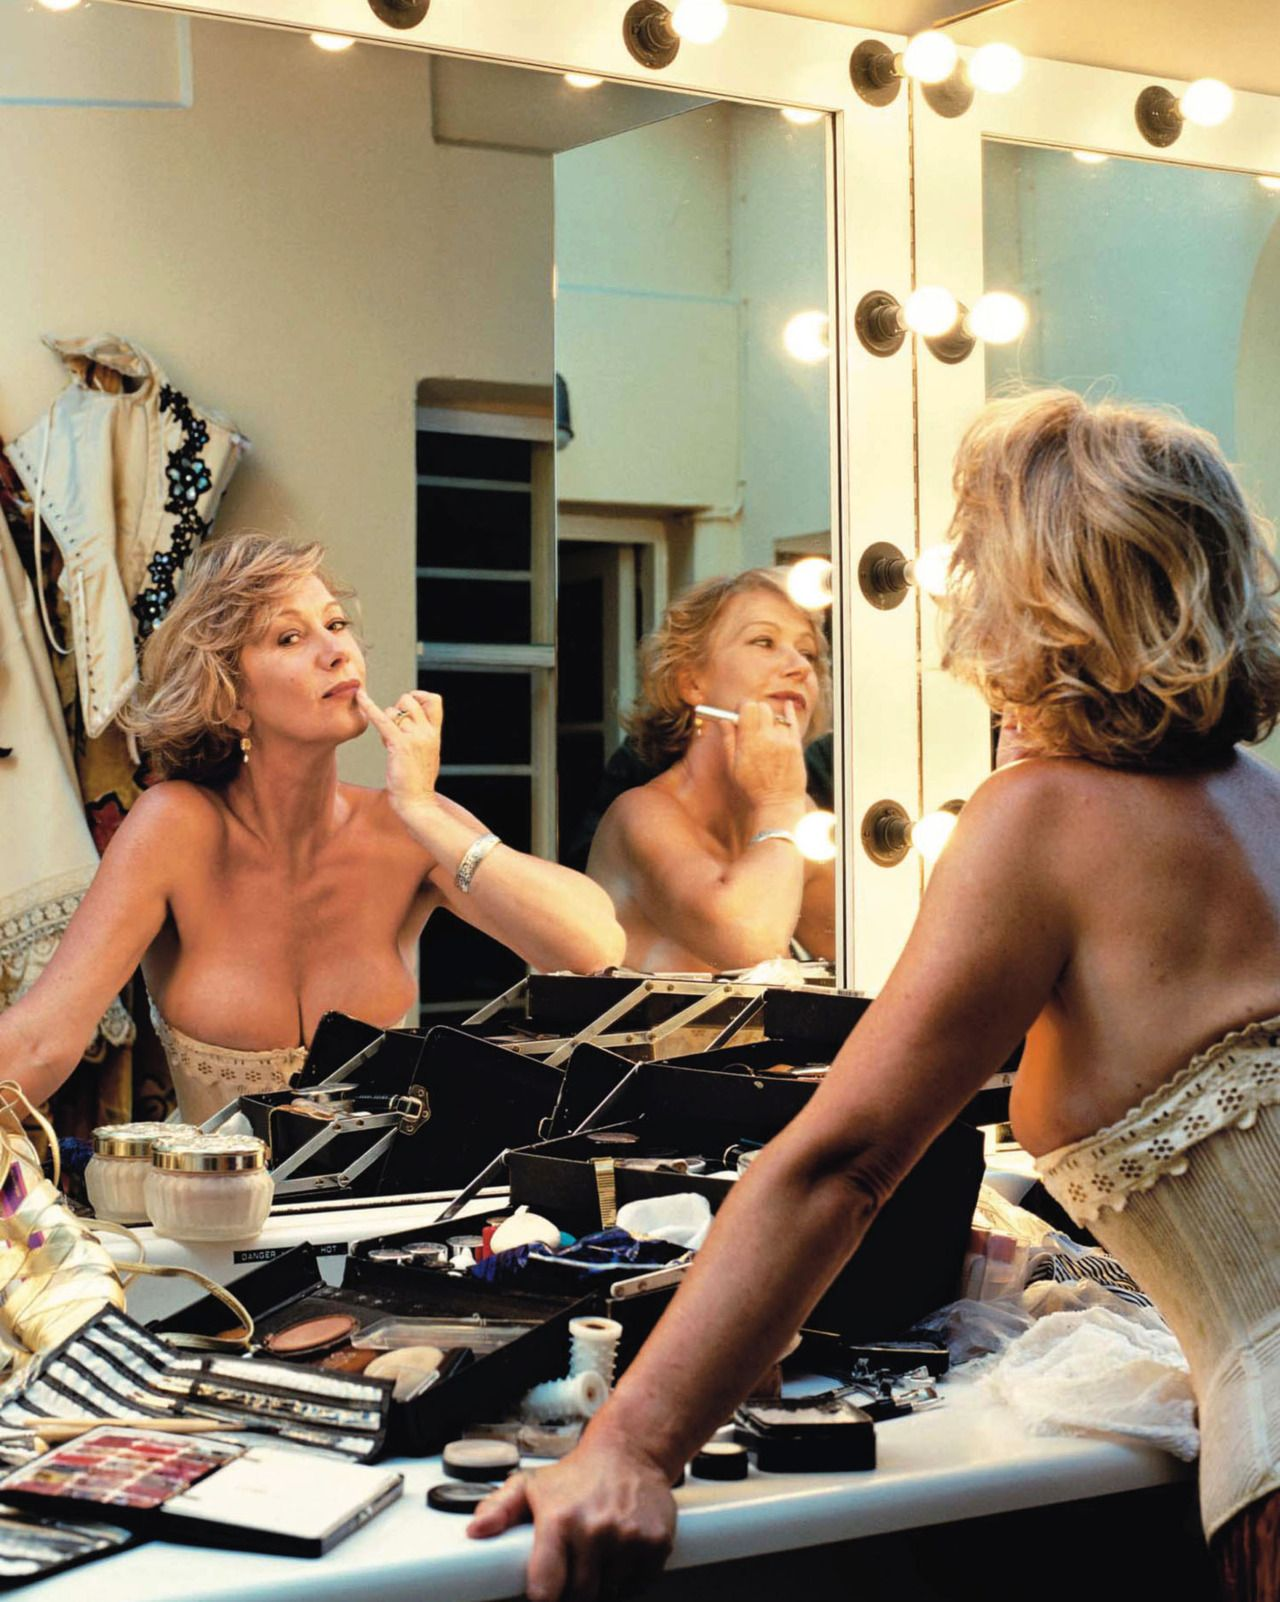 00310aef37 Helen Mirren in her dressing room - so incredibly sexy.